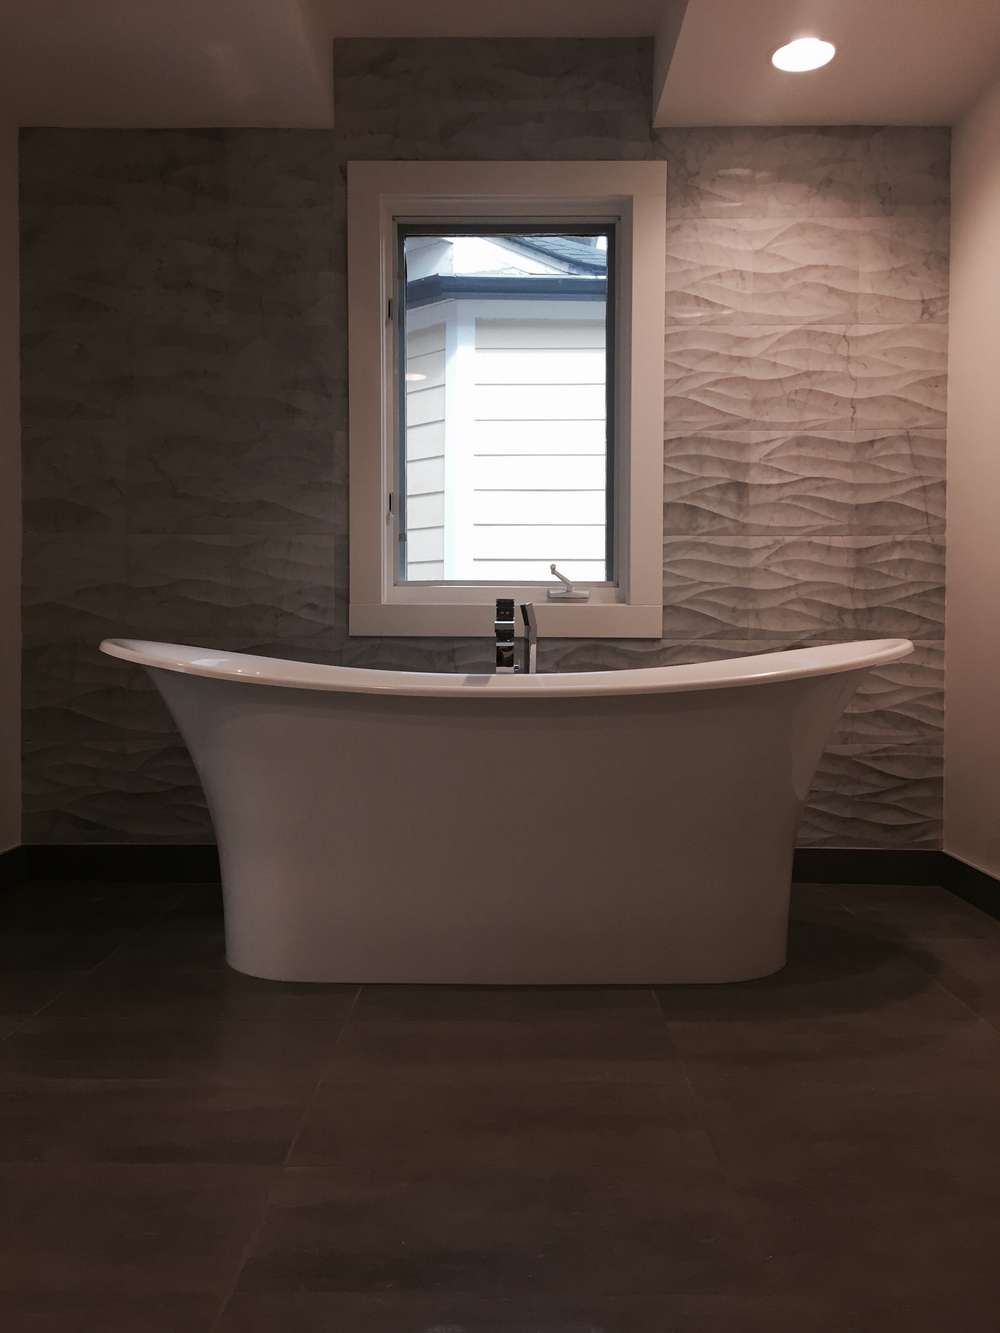 Victoria and Albert volcanic limestone bath, Ziva Leaves tile by Artistic Tile.